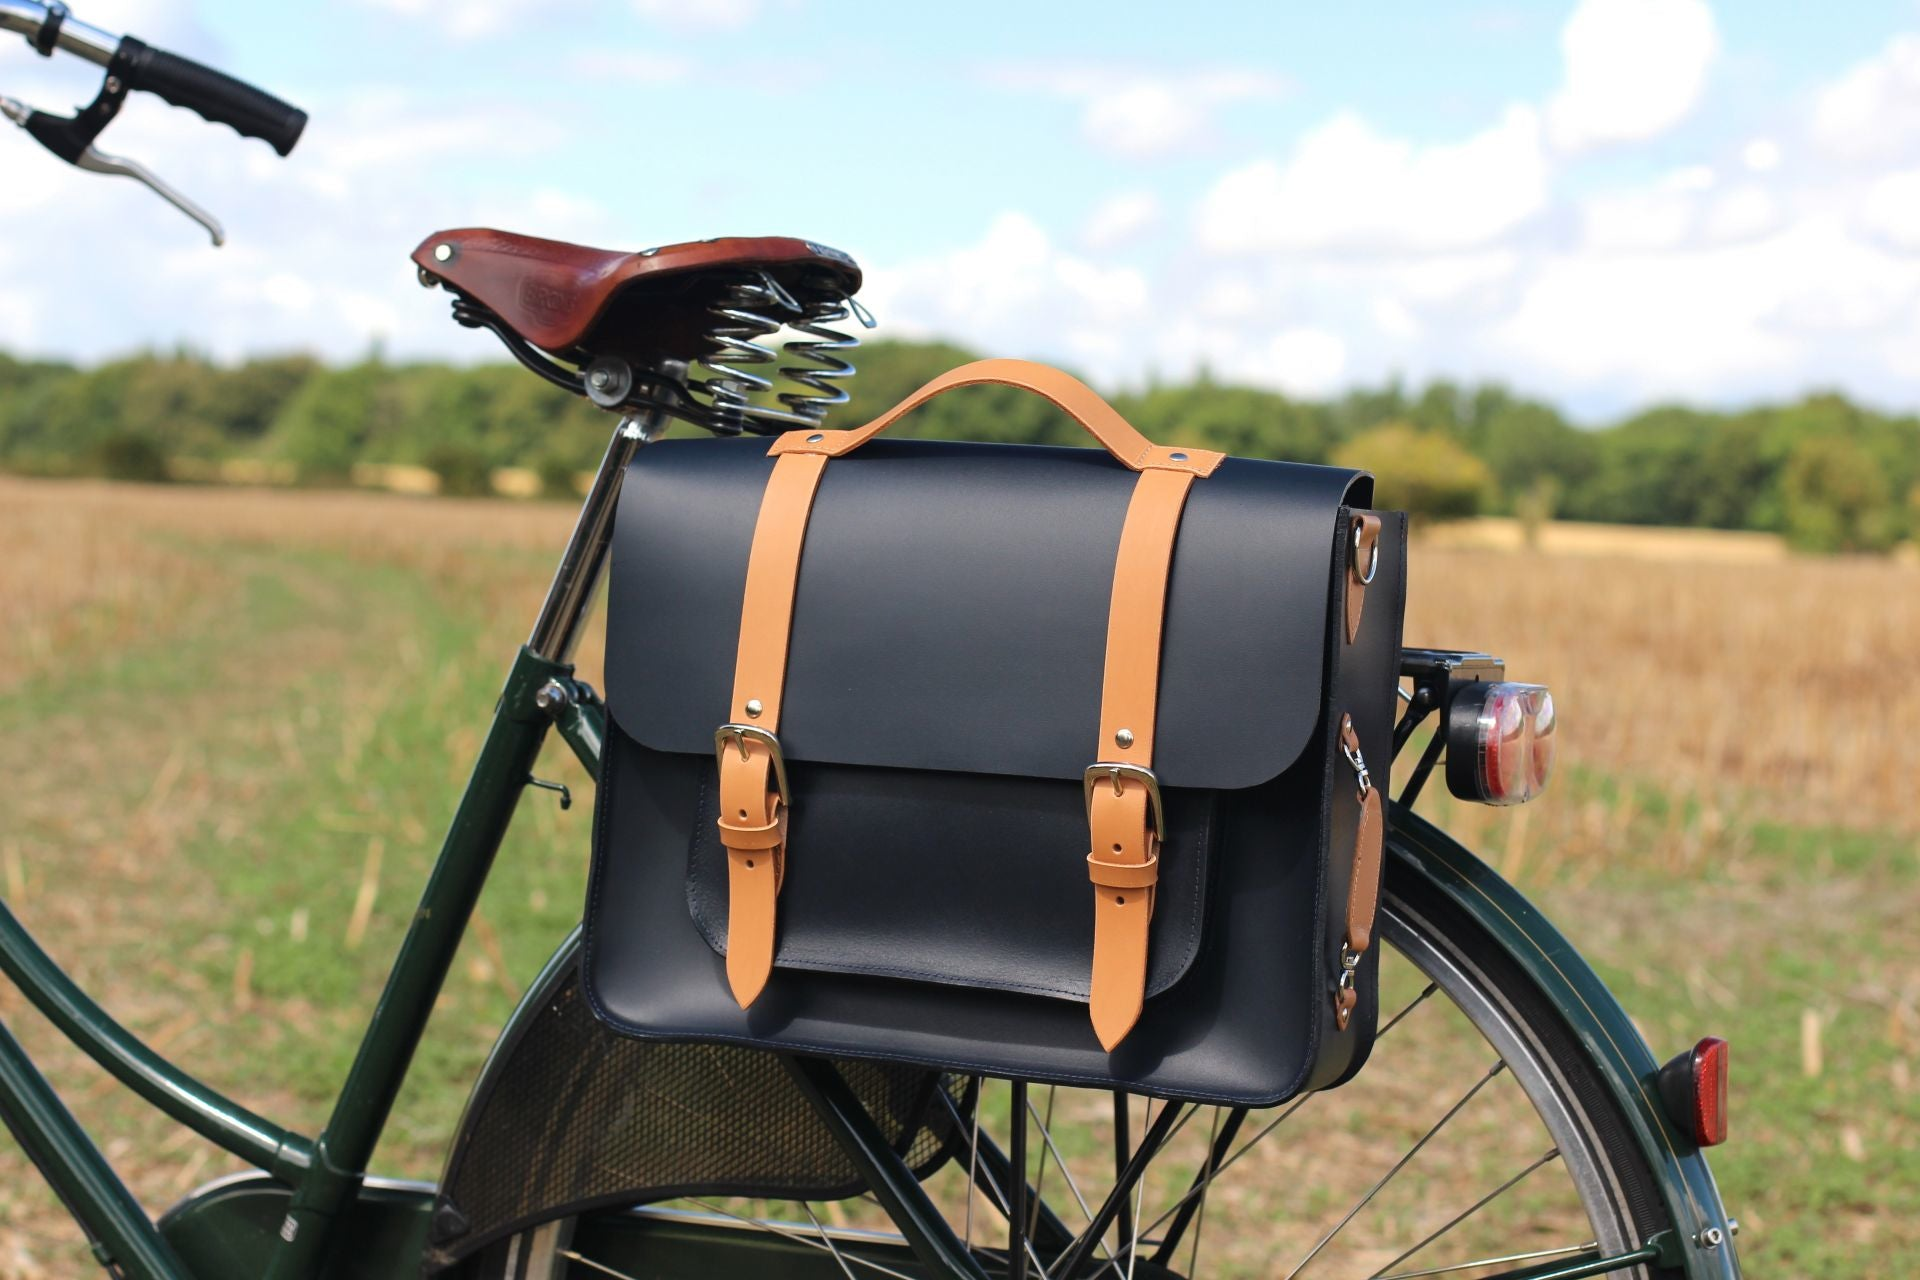 Jessica Doyle's Curated picks to discover cycling beyond summer for Le Velo Victoria Featured The Professor Leather Pannier by Hill and Ellis